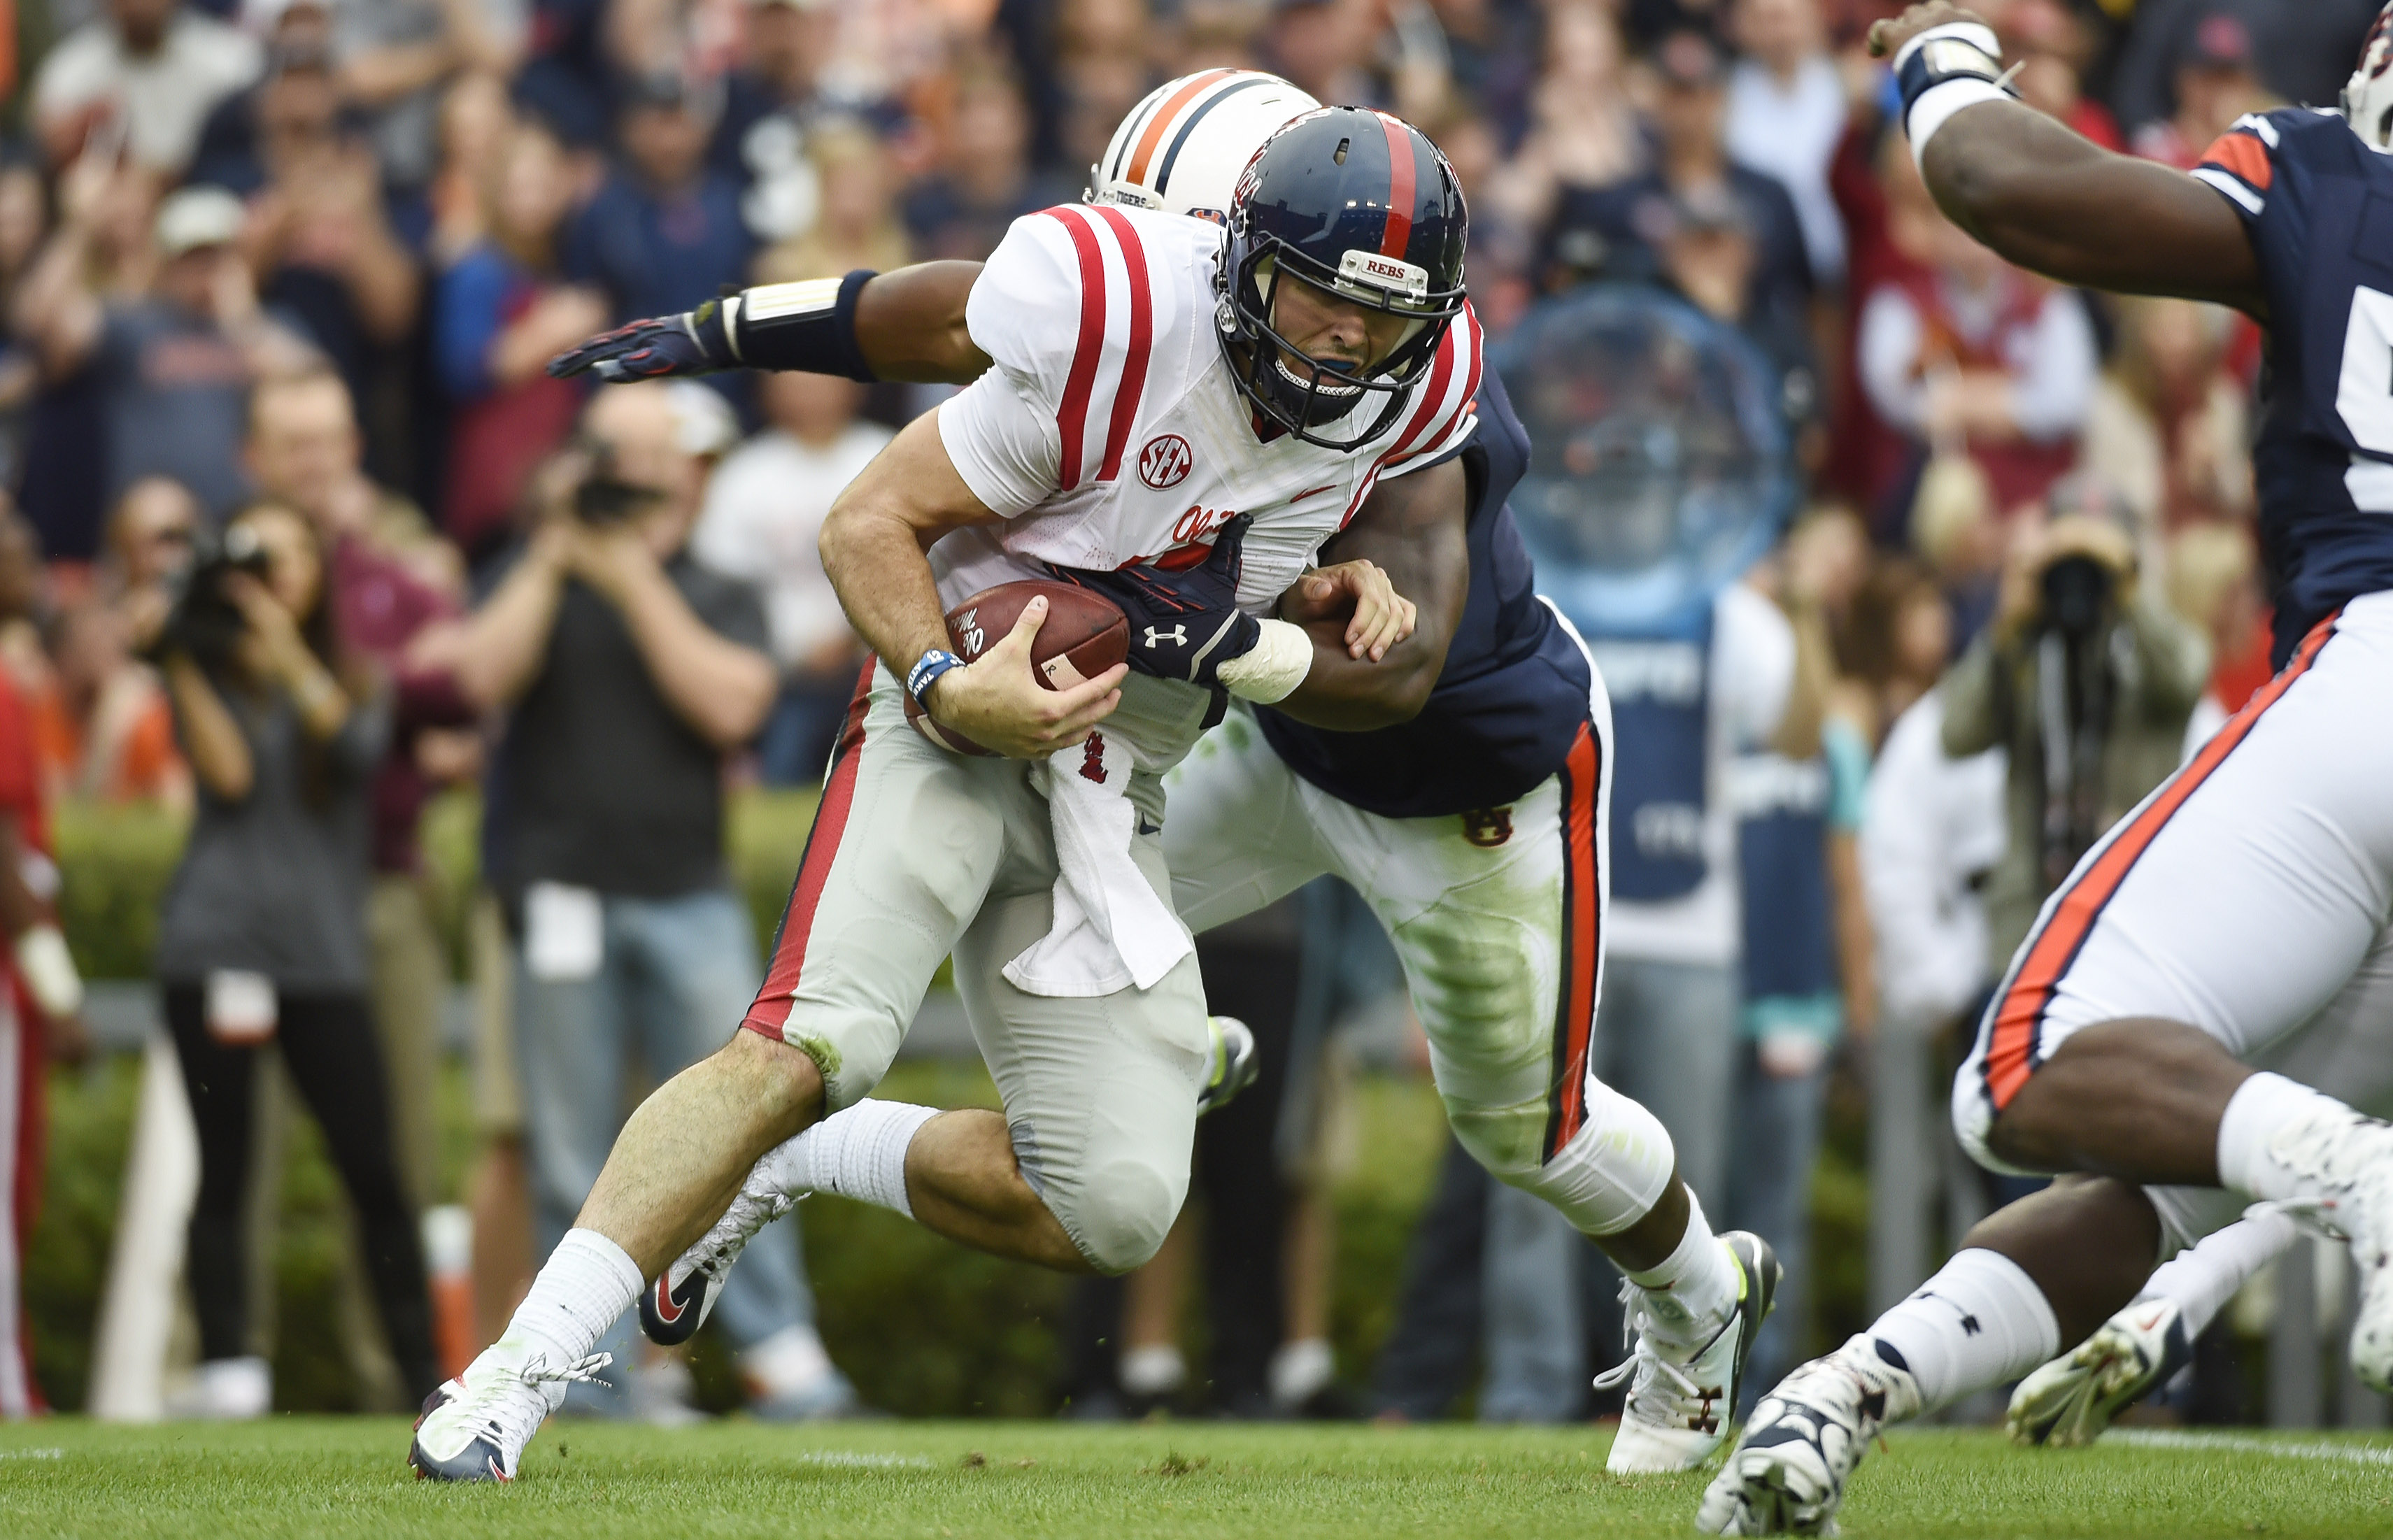 Oct 31, 2015; Auburn, AL, USA; Mississippi Rebels quarterback Chad Kelly (10) is brought down by Auburn Tigers linebacker Cassanova McKinzy (8) during the first quarter at Jordan Hare Stadium. (Shanna Lockwood/USA TODAY Sports)